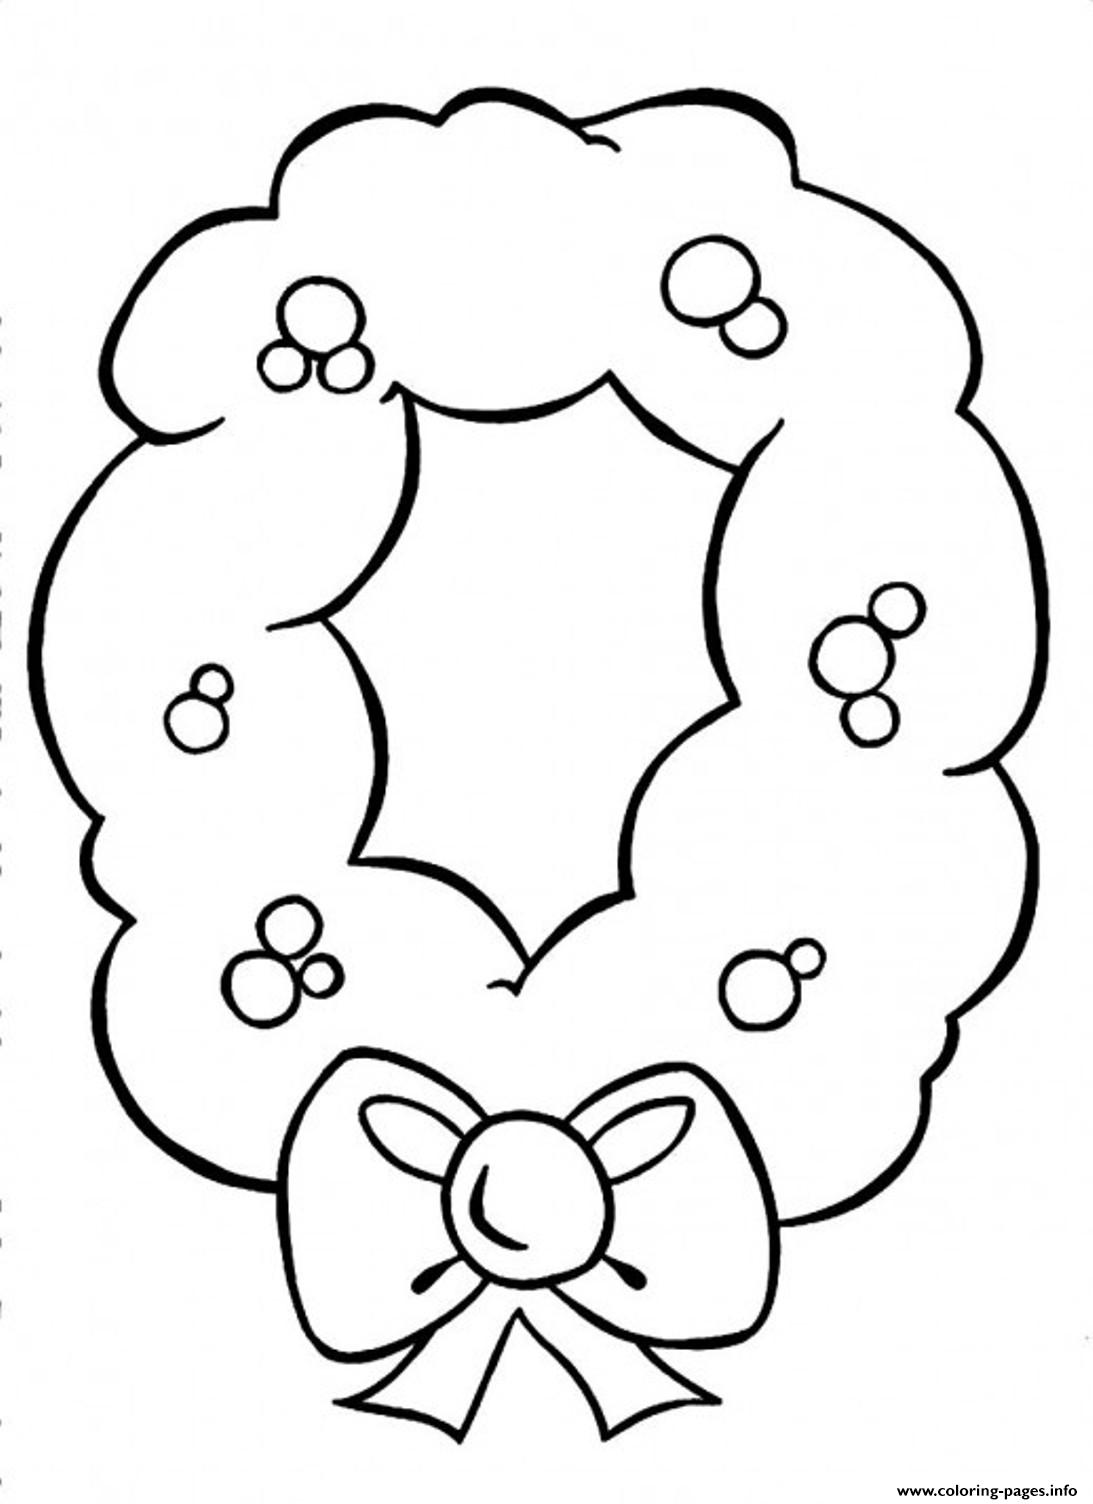 A Pretty Ornament For Christmas Printable S49d3 coloring pages